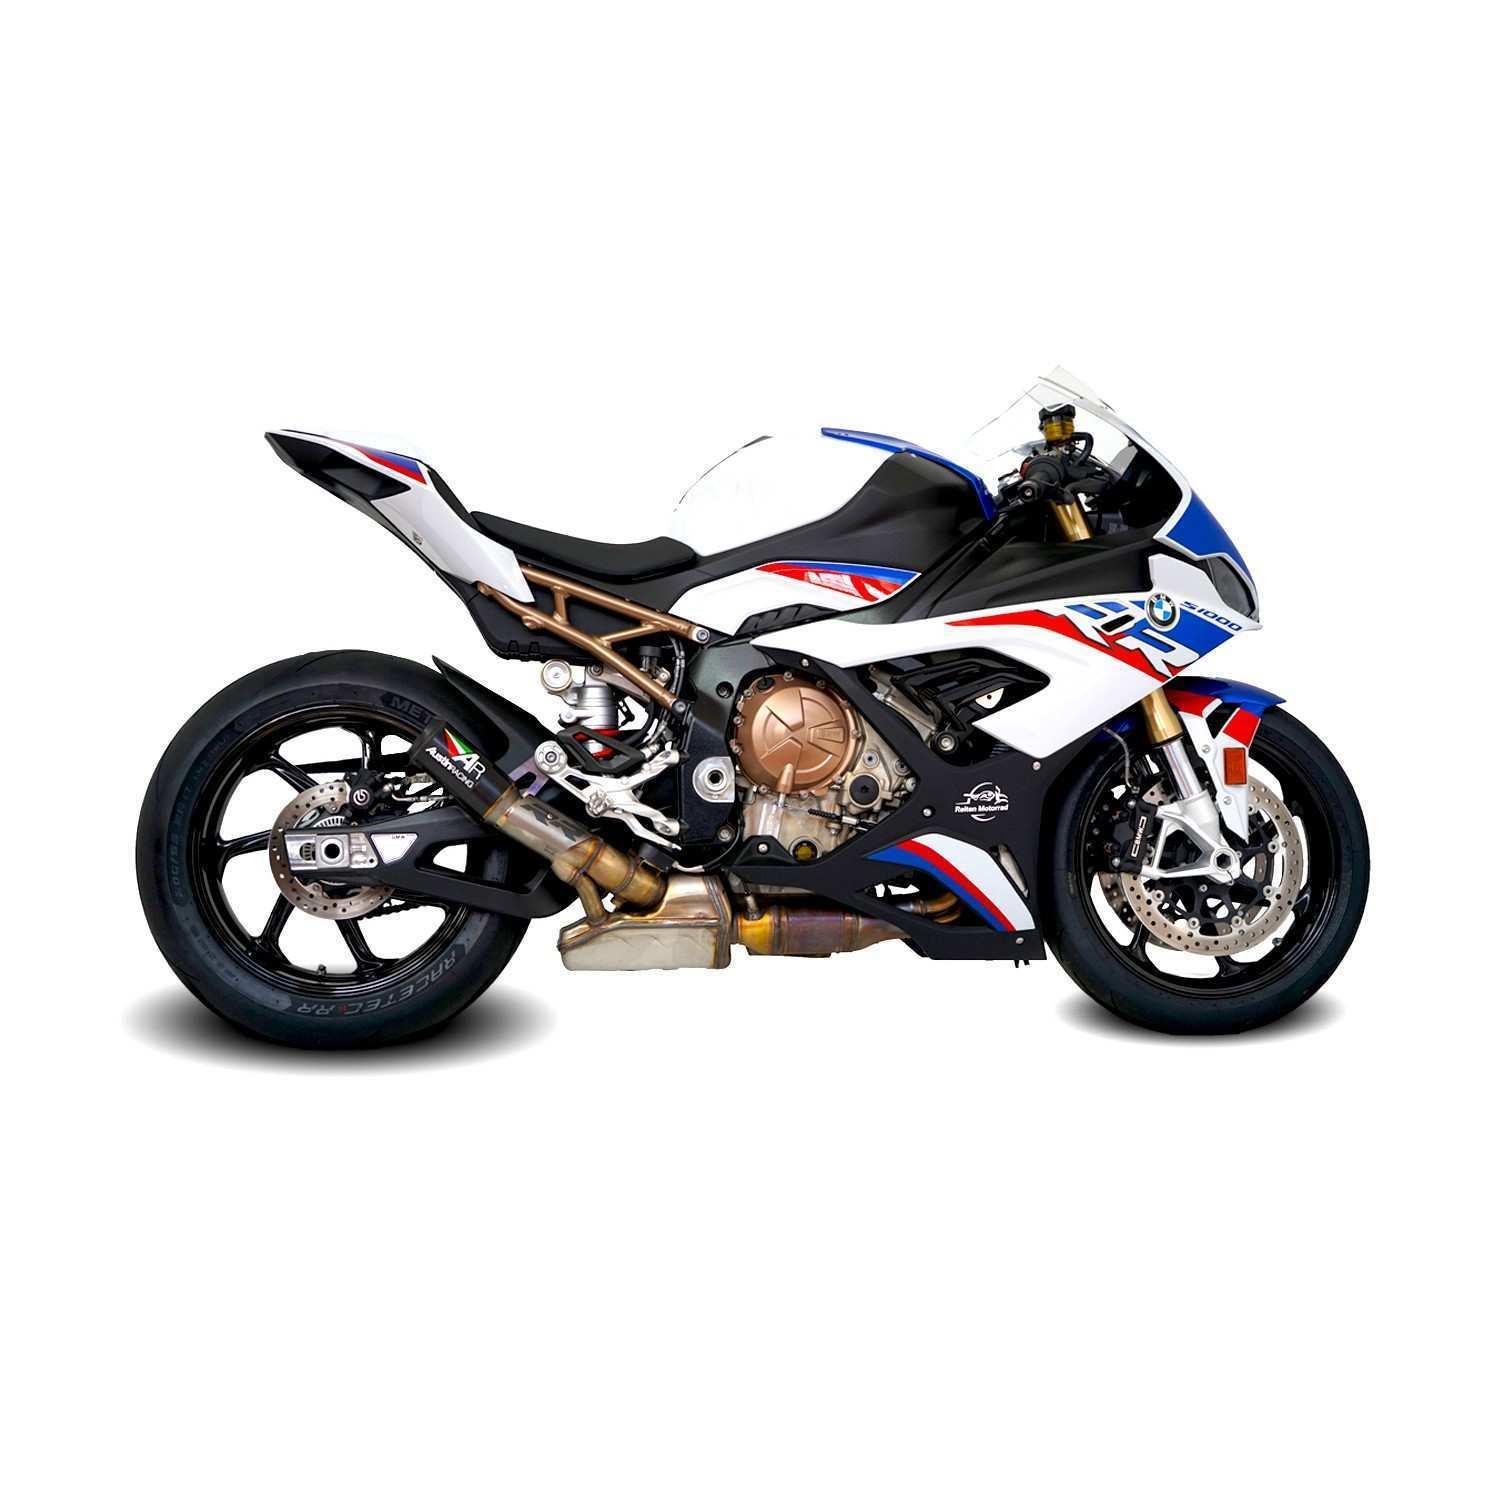 69 The Best Bmw S1000Rr 2020 Concept And Review